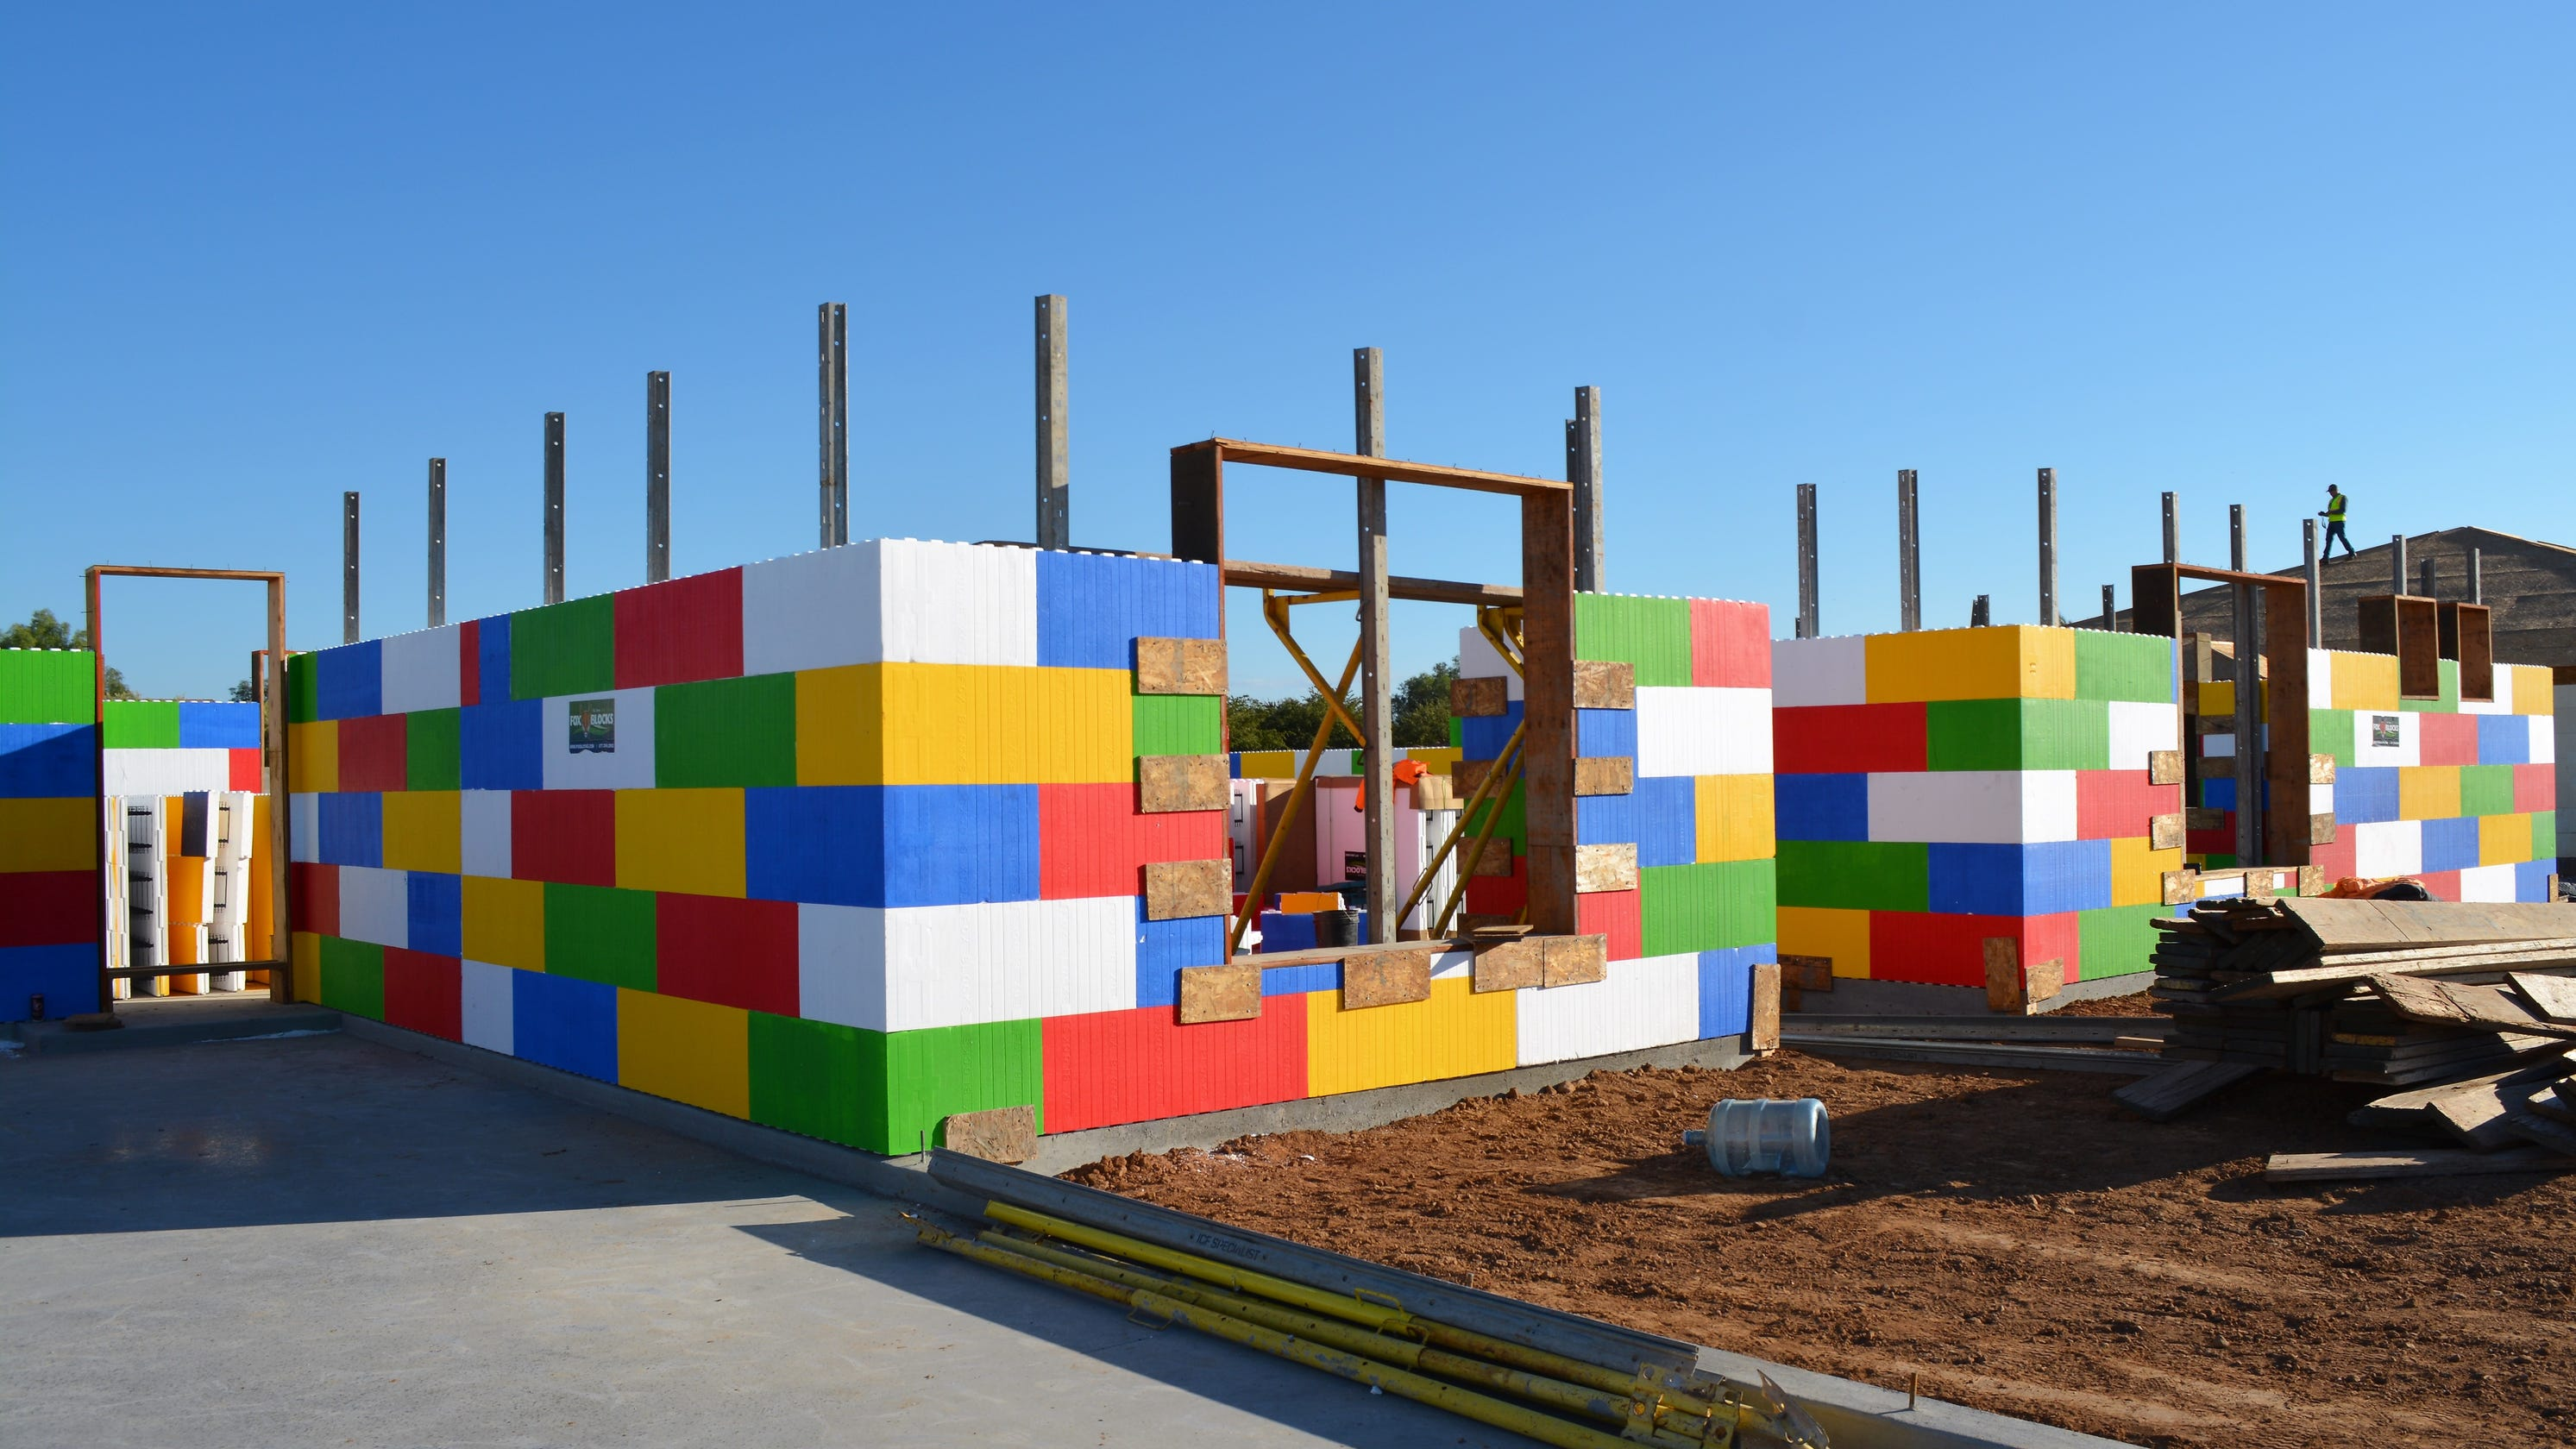 Lego-like house in Waddell nears completion